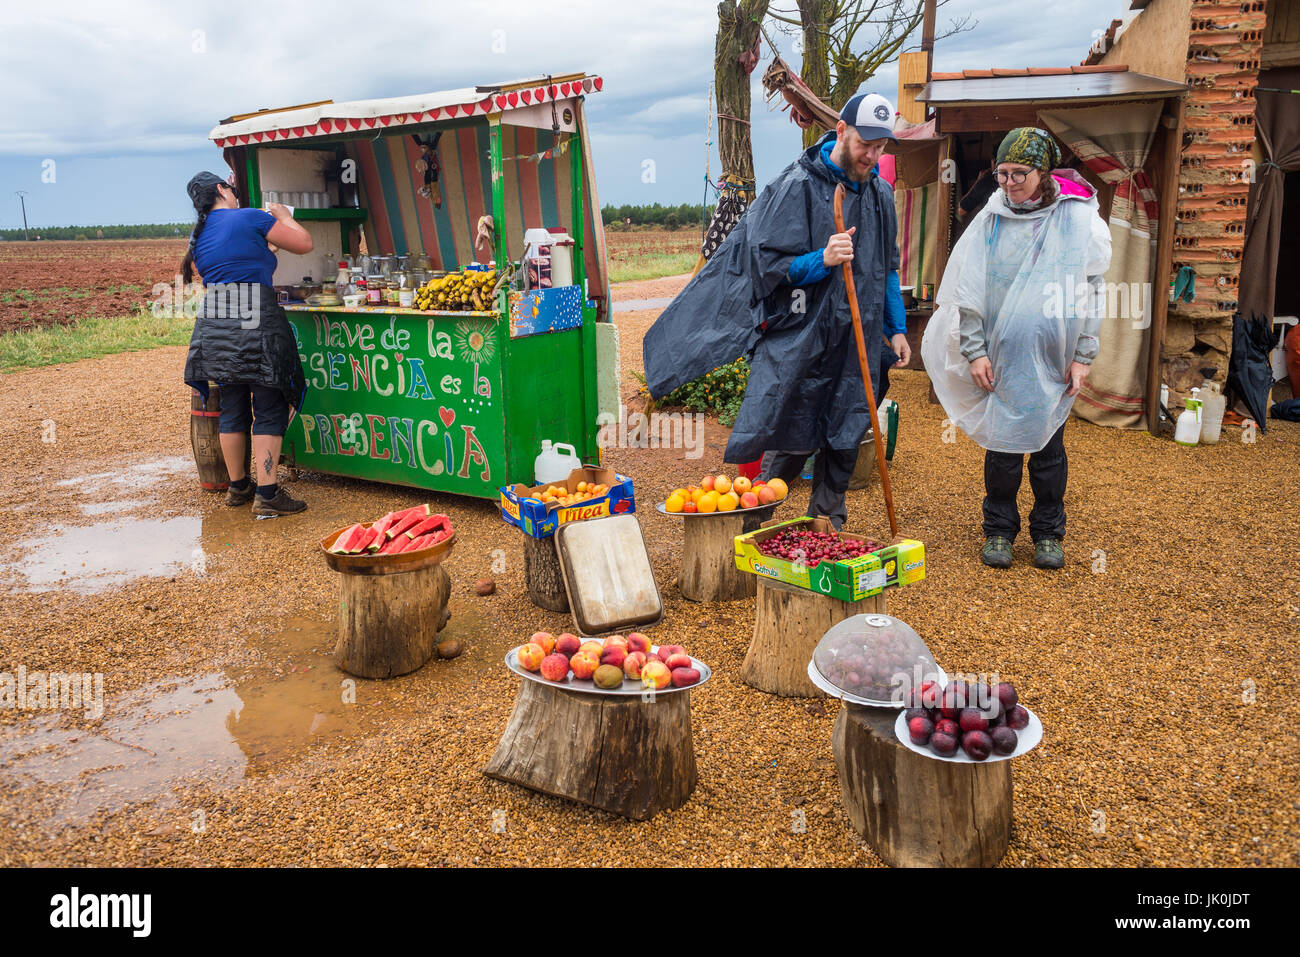 donation hut with fresh food and dring on the way Camoni de santiago, Near of Leon, Spain, Europe. Stock Photo